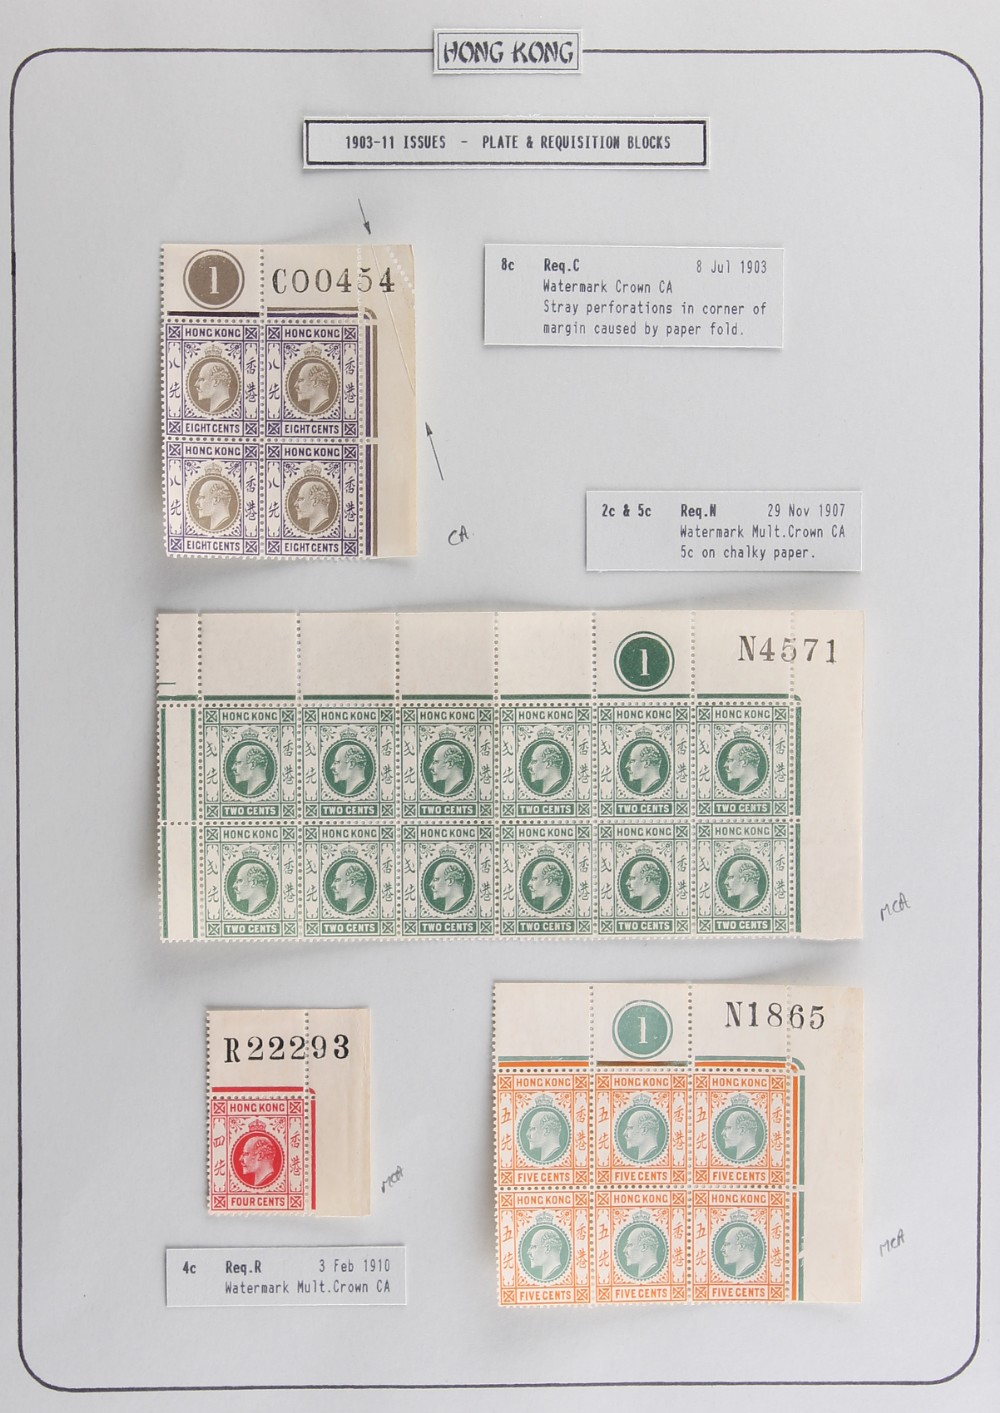 The Basil Lewis (1927-2019) collection of stamps - Hong Kong: 1903-11 a selection of mint pieces